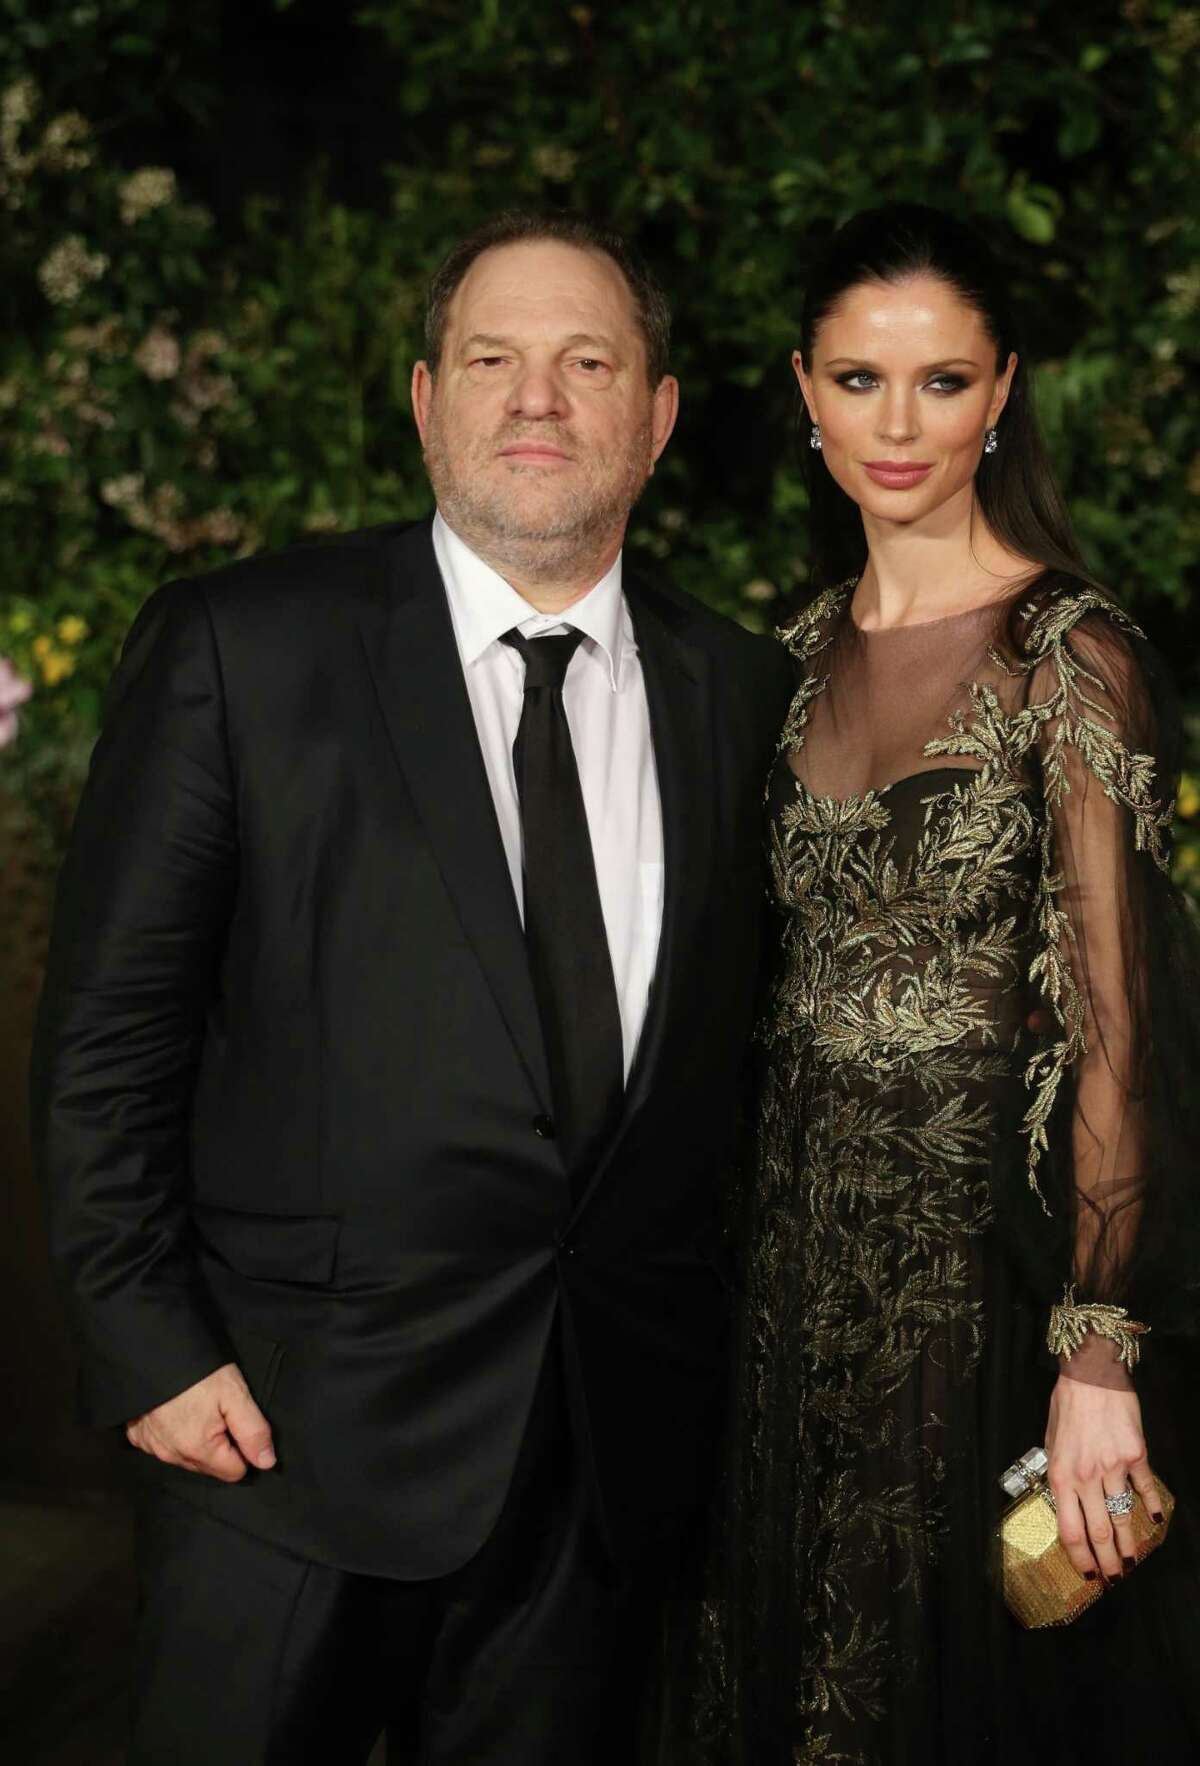 Harvey Weinstein and Georgina Chapman: The disgraced Hollywood producer and fashion designer finally reached a divorce agreement. After allegations of sexual misconduct, the Marchesa co-founder issued a statement on the couple's would-be 10th anniversary: